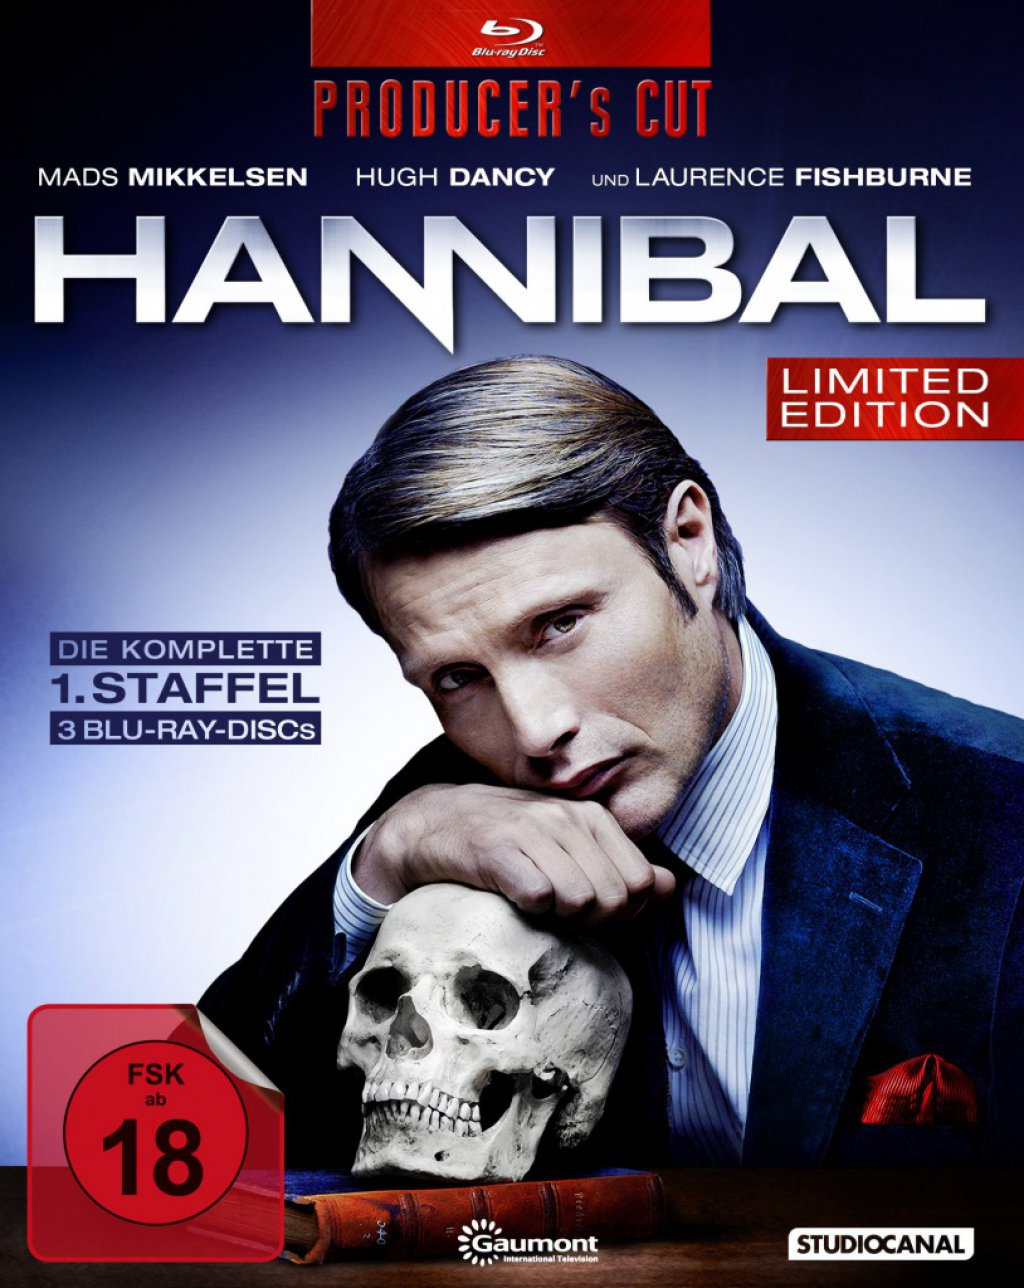 Hannibal - Staffel 01 / Producer's Cut (Blu-ray)